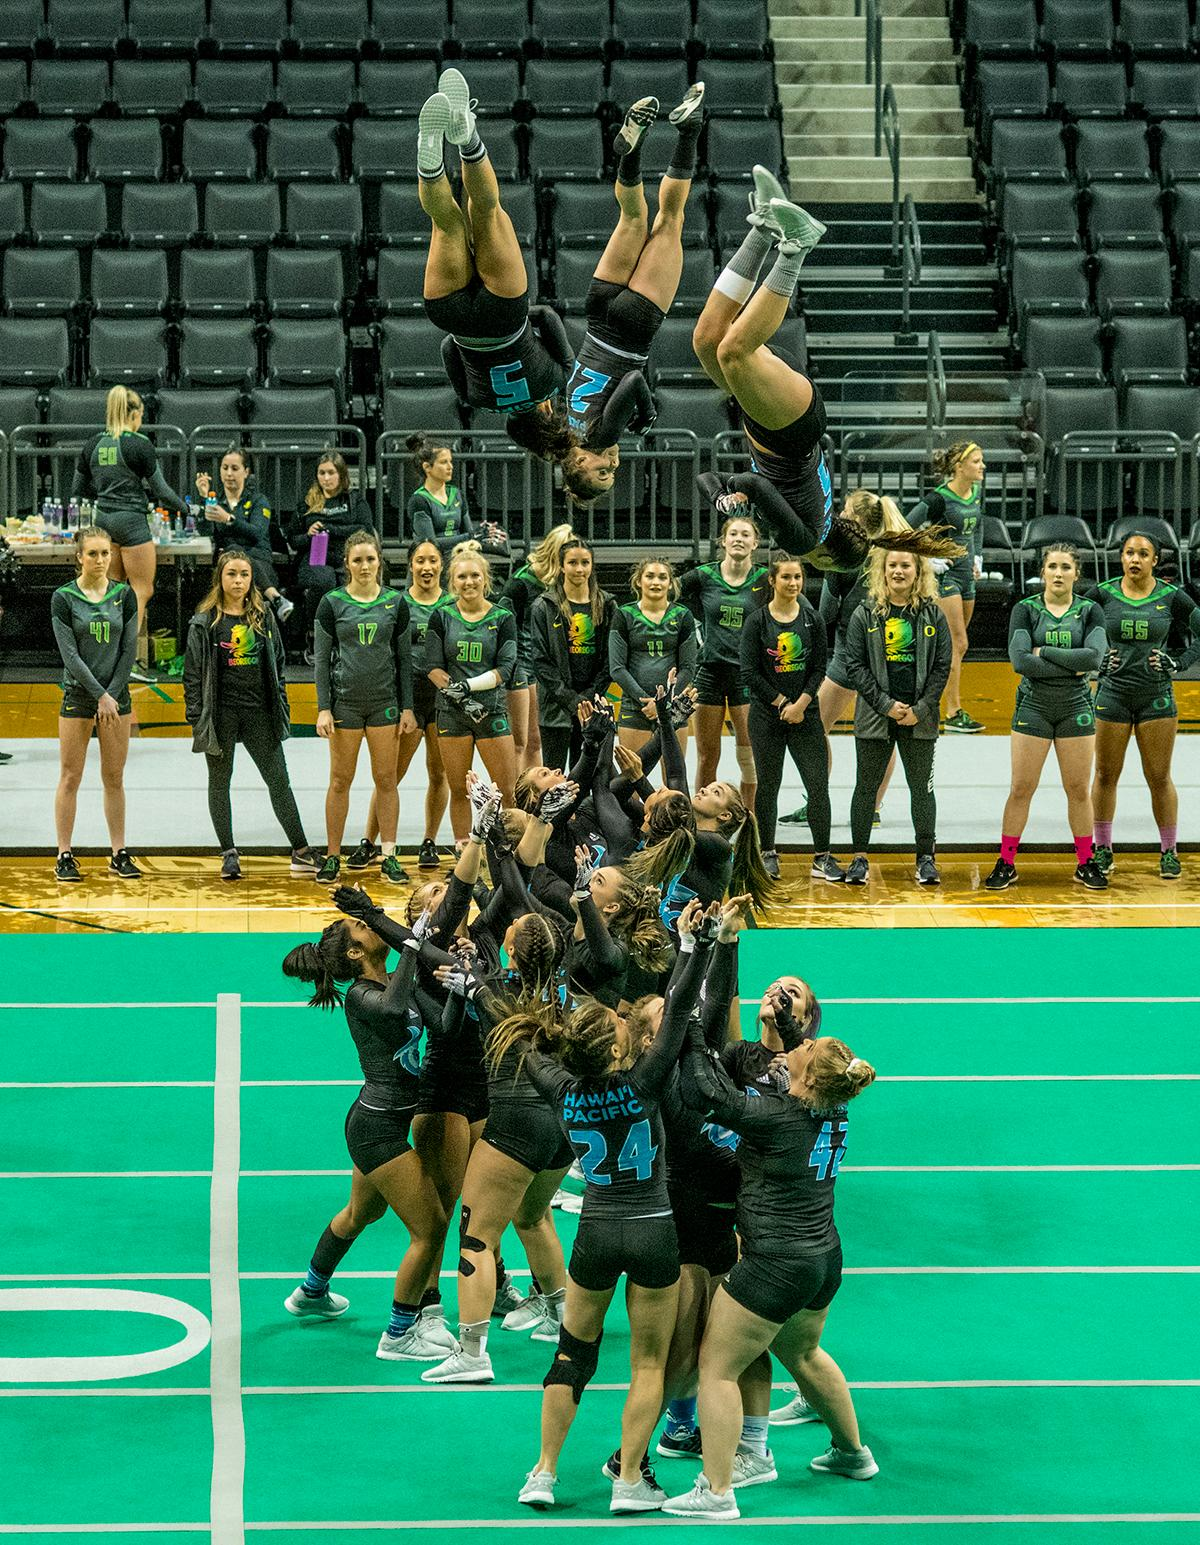 The Oregon Ducks Acro and Tumbling team defeated Hawaii Pacific in their second meet of the season and their first home meet with a score of 280.10 to 267.595. The Ducks won all six categories: 38.45 to 38.30 in compulsory; 29.55 to 28.55 in acro; 29.50 to 28.40 in pyramid; 29.10 to 27.50 in toss; 56.30 to 54.075 in tumbling; and 97.20 to 90.77 in team. The Ducks next face off against their arch rivals the Baylor Bears at Baylor February 24 and then return to Matt Knight Arena for a Tri Meet against Quinnipac and Gannon on March 11. Photo by Dan Morrison, Oregon News Lab